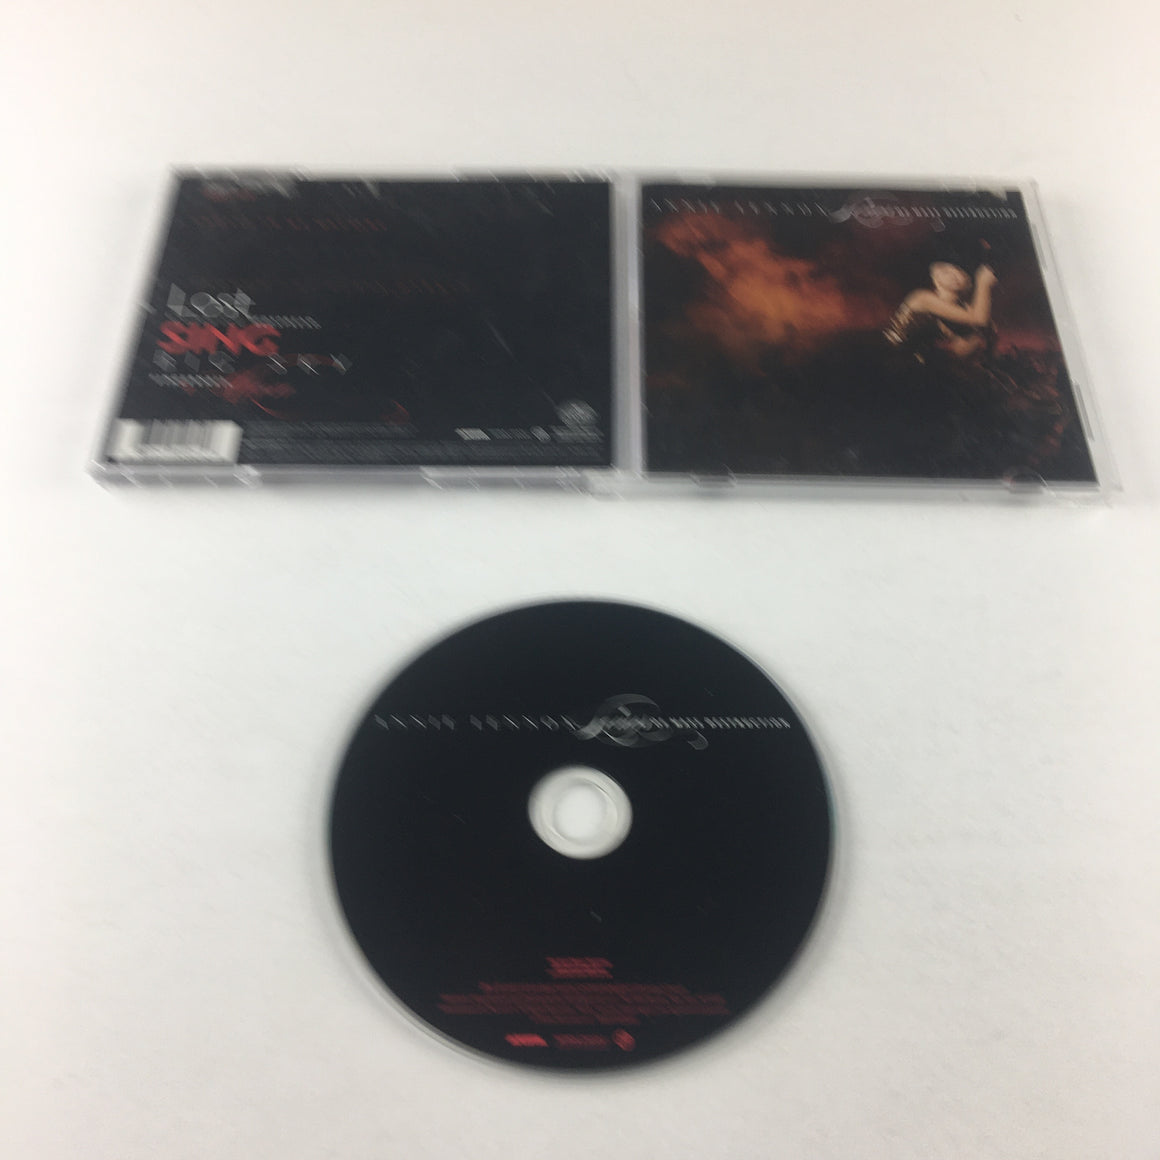 Annie Lennox Songs Of Mass Destruction Used CD VG+ 88697 15260 2